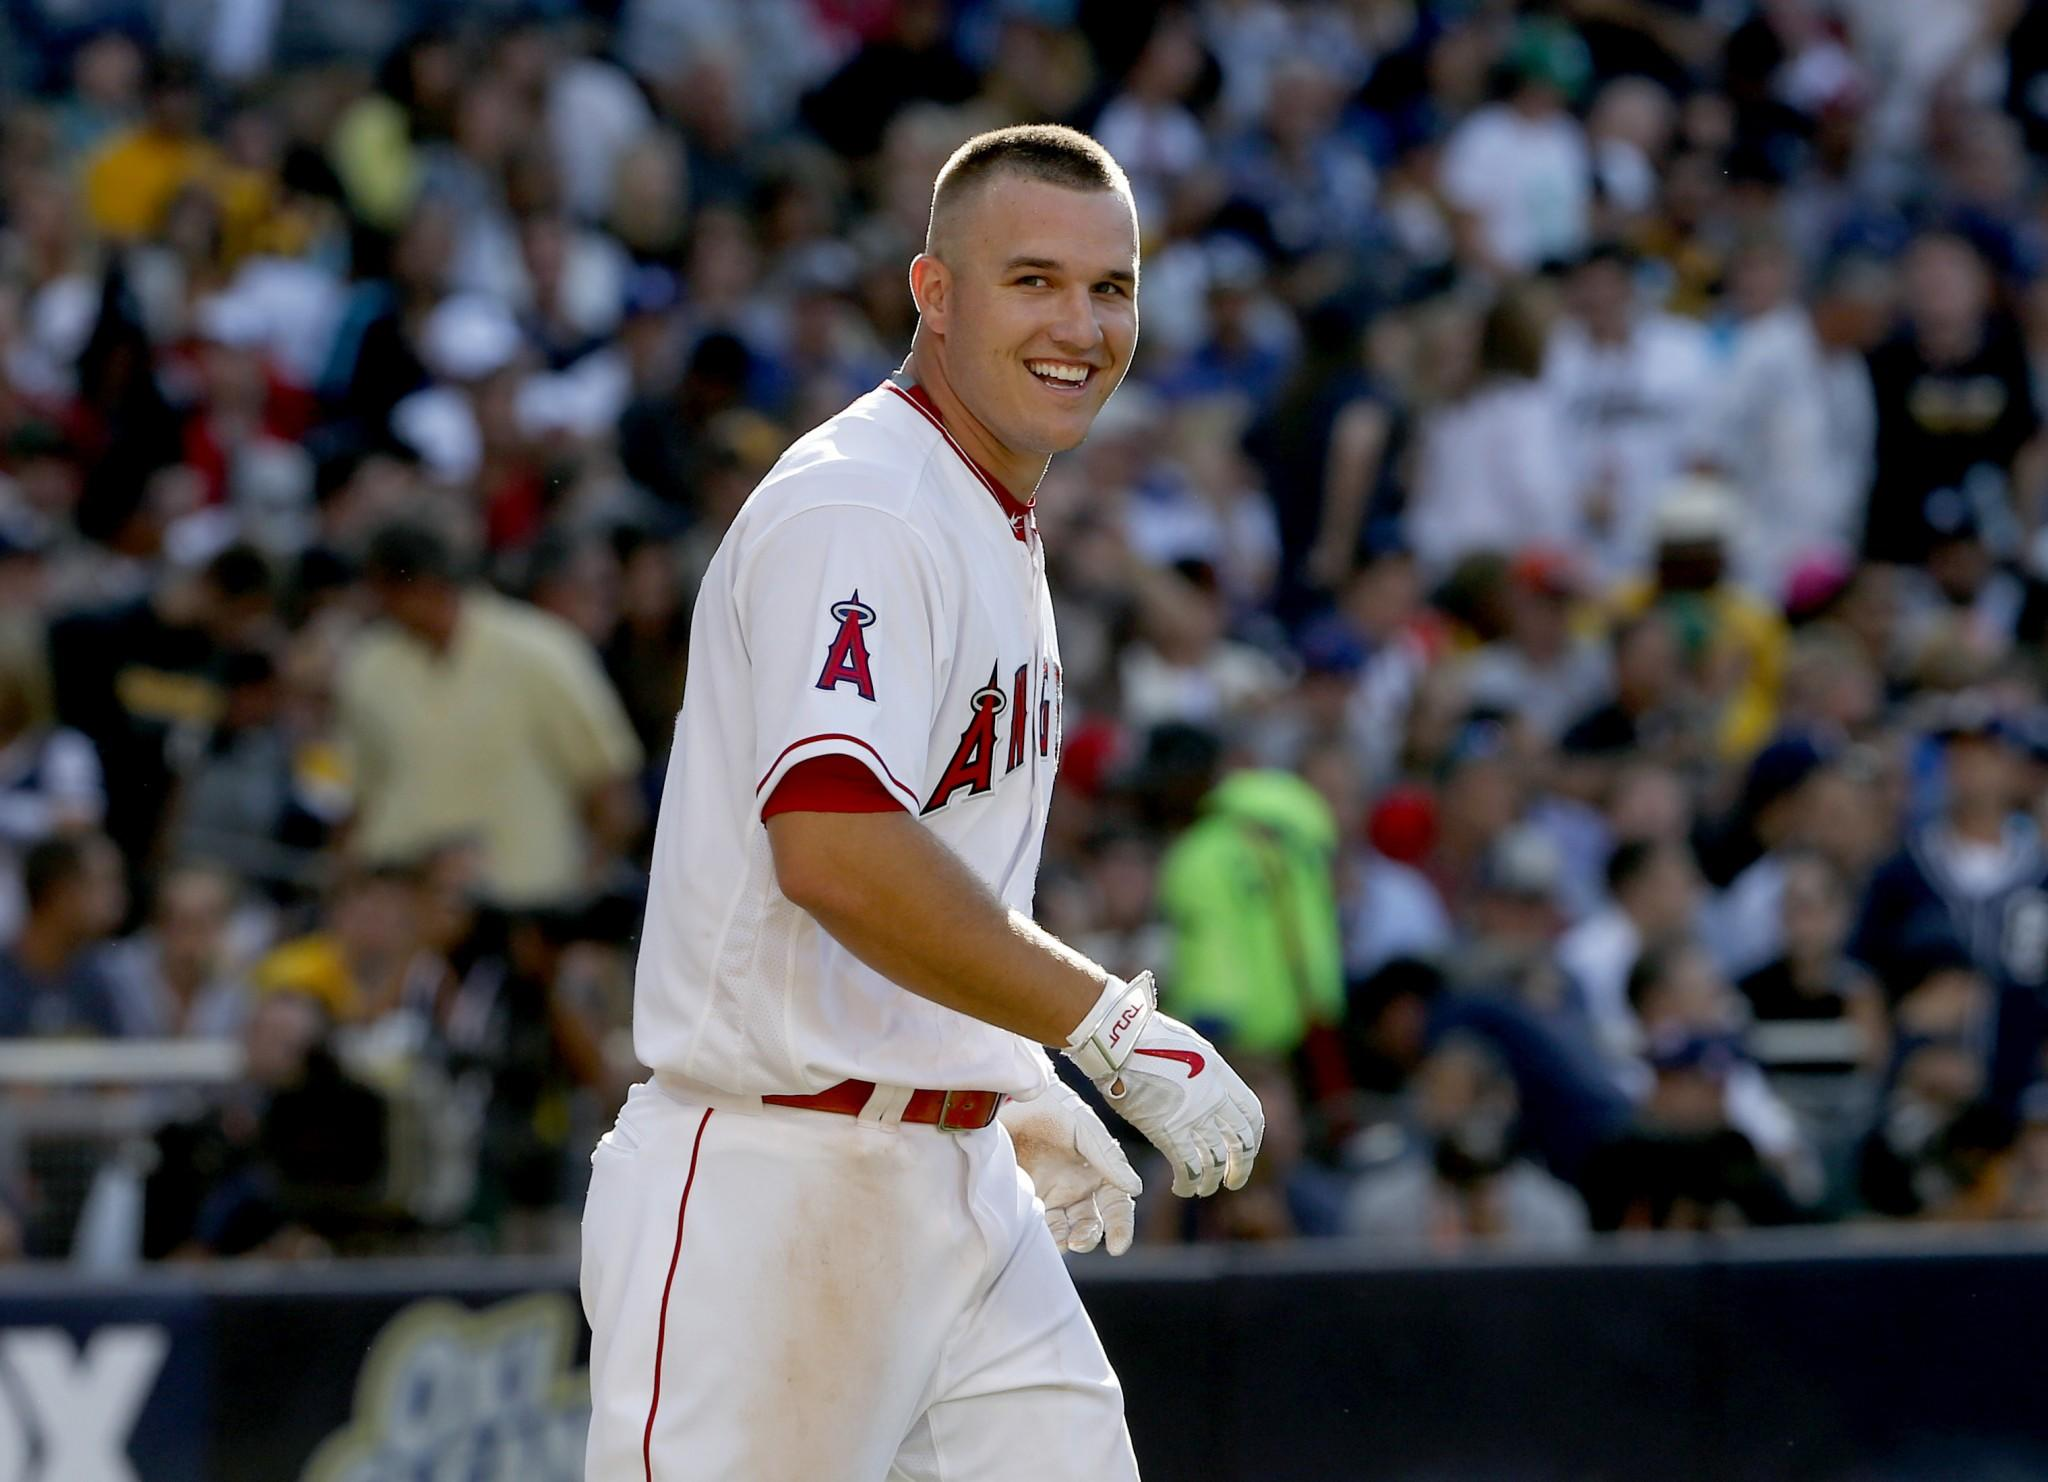 Help Writing Essay Paper Podcast Mike Trout On Rookie Hazing And If The Angels Are Wasting His Prime An Essay About Health also What Is The Thesis Of A Research Essay Podcast Mike Trout On Rookie Hazing And If The Angels Are Wasting  Simple Essays For High School Students